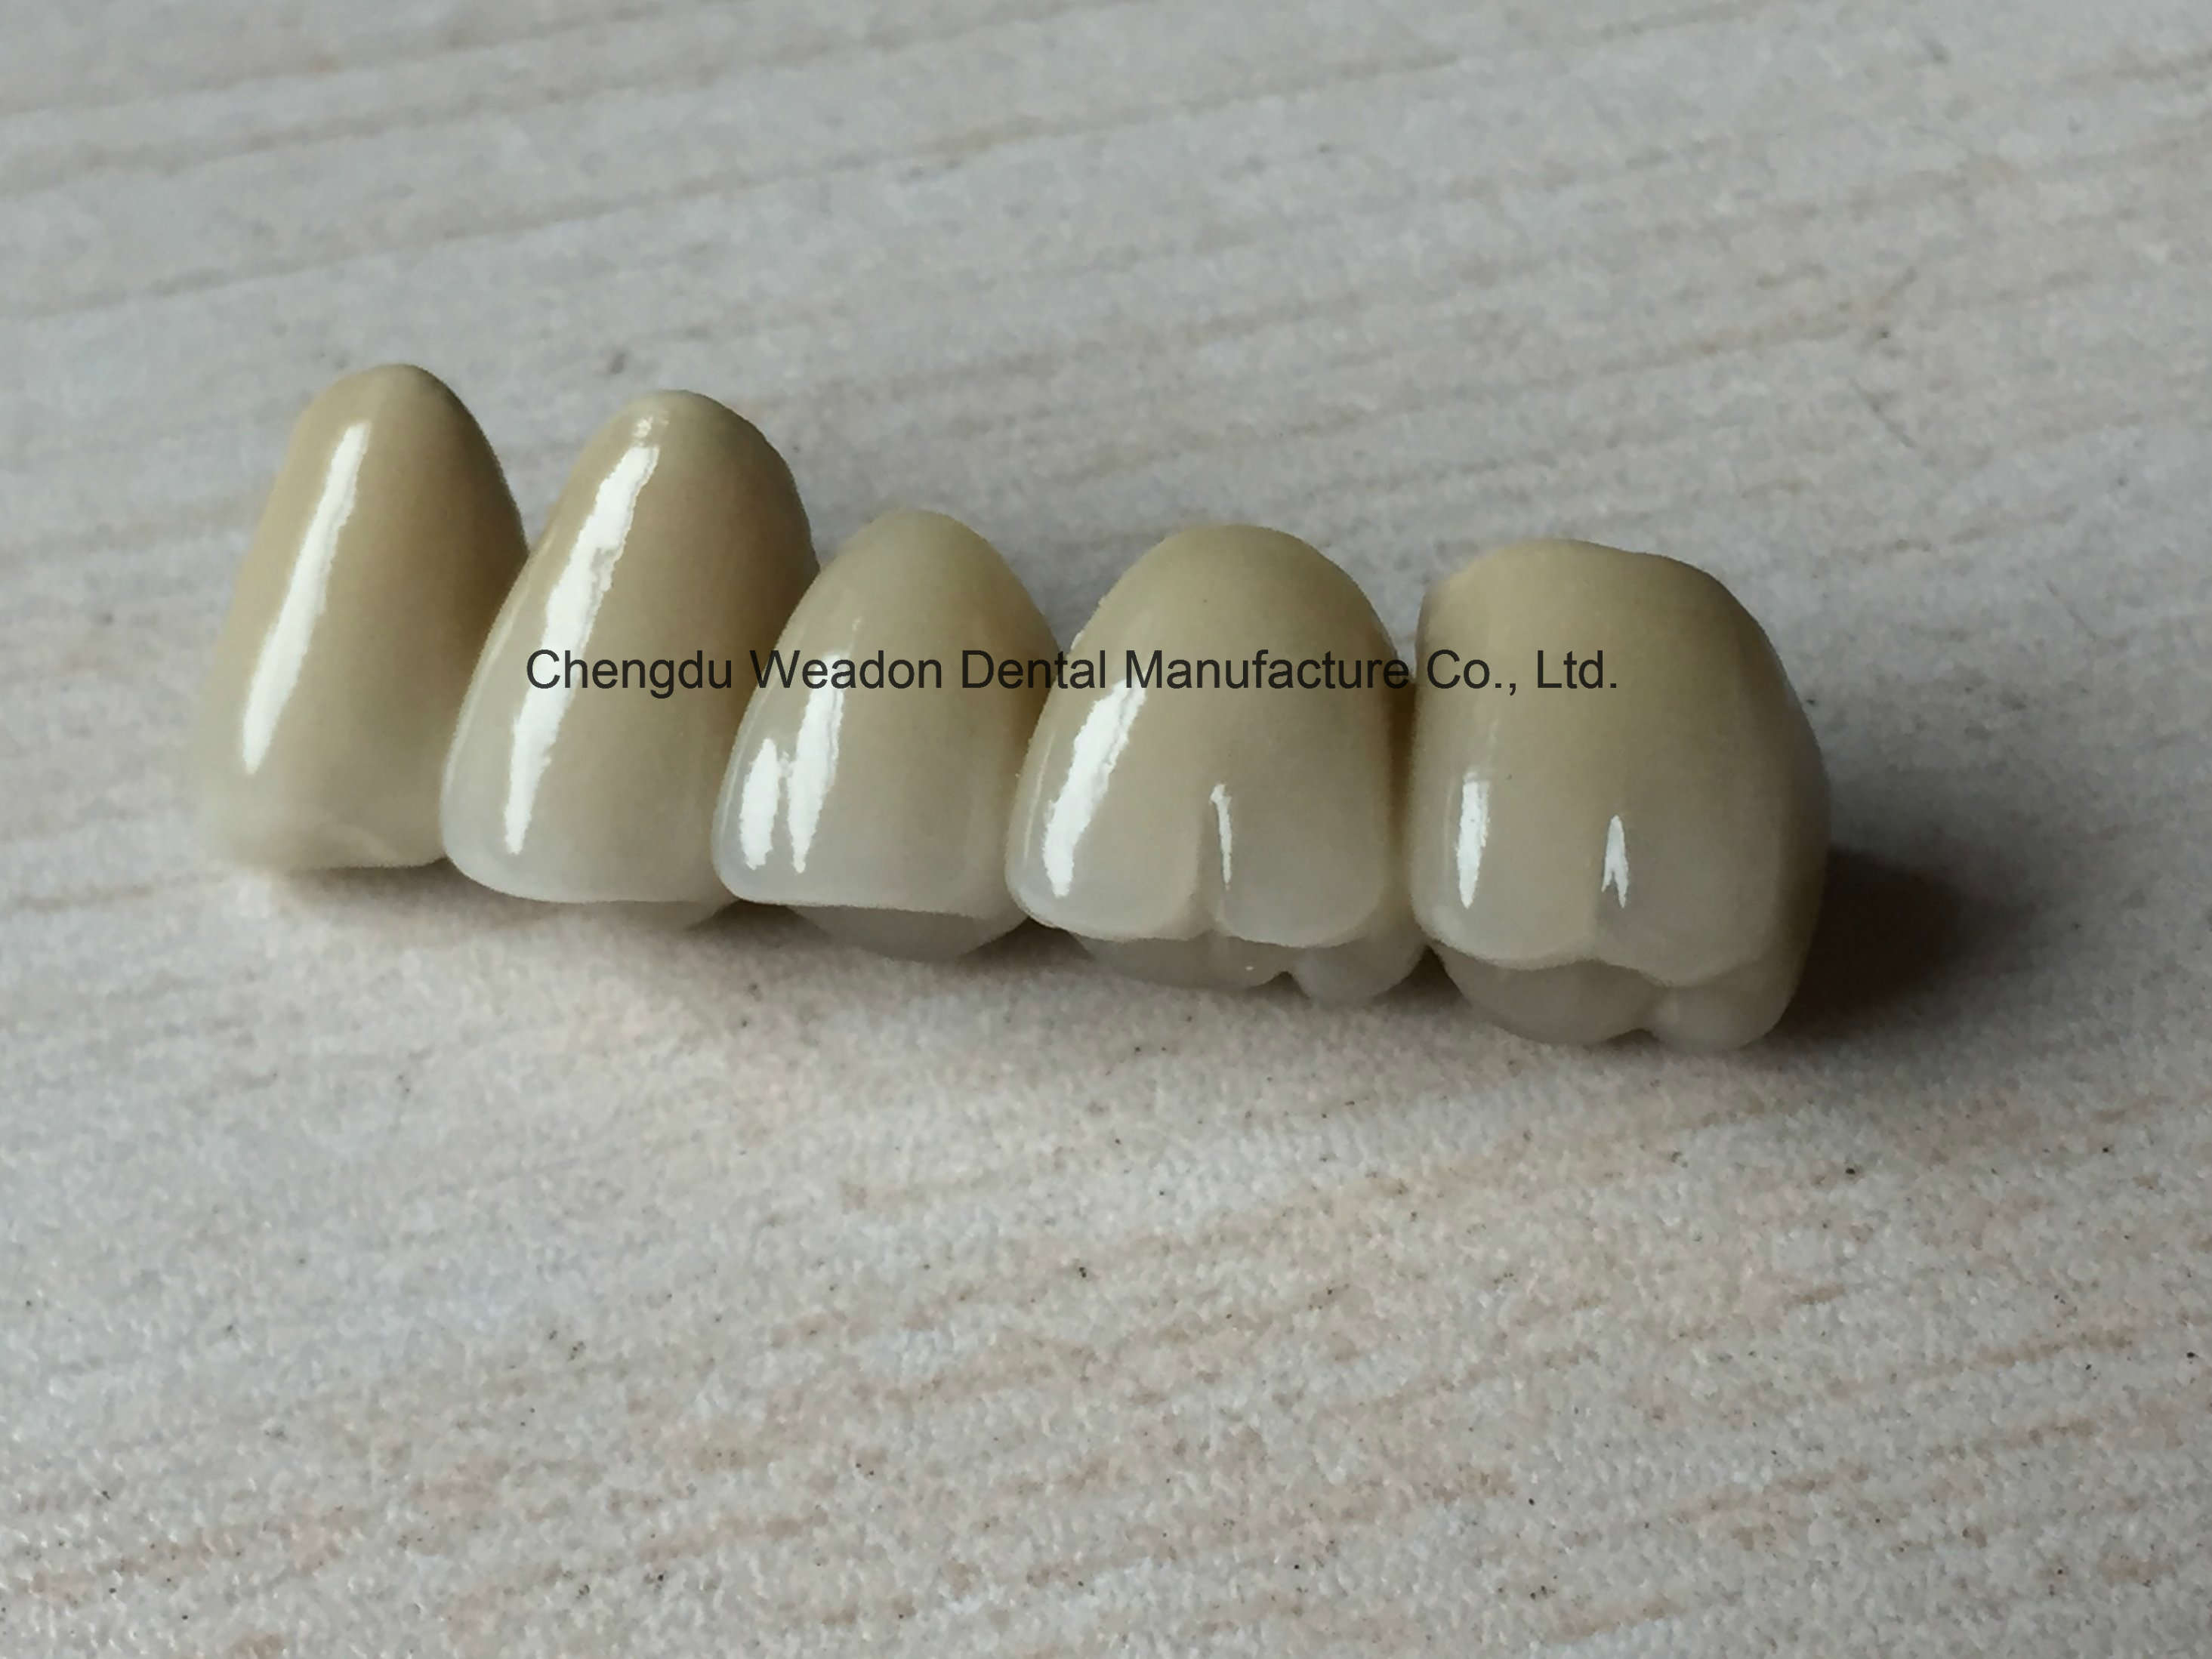 Pfm Bridge Denture for Clinic From Chinese Dental Lab